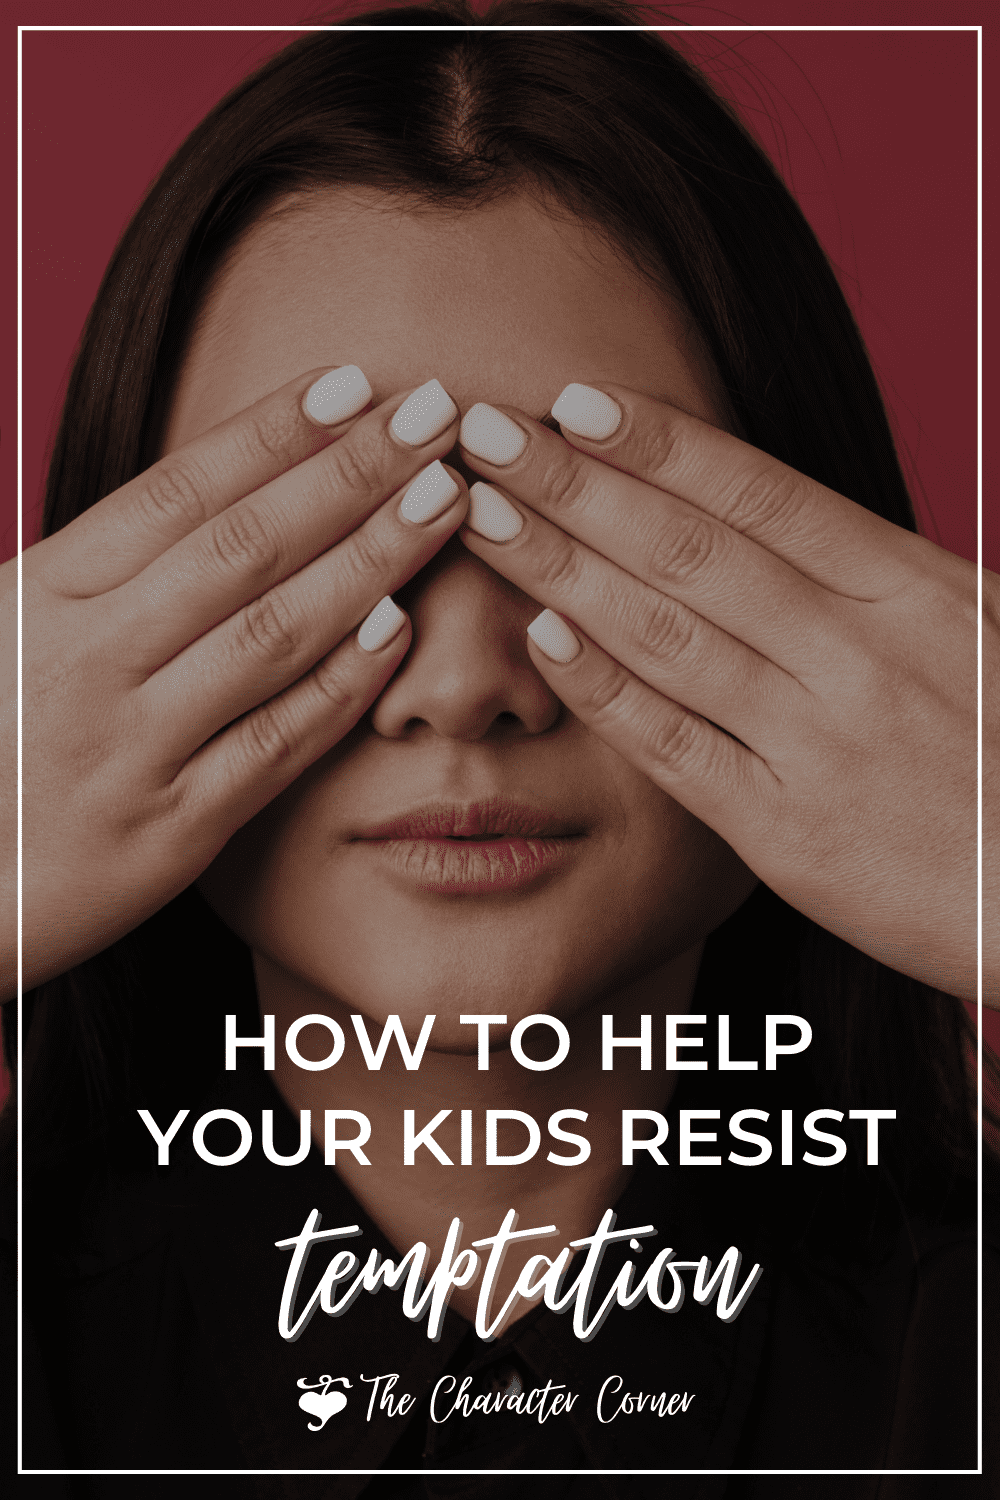 Child covering her eyes text on image reads how to help your kids resist temptation